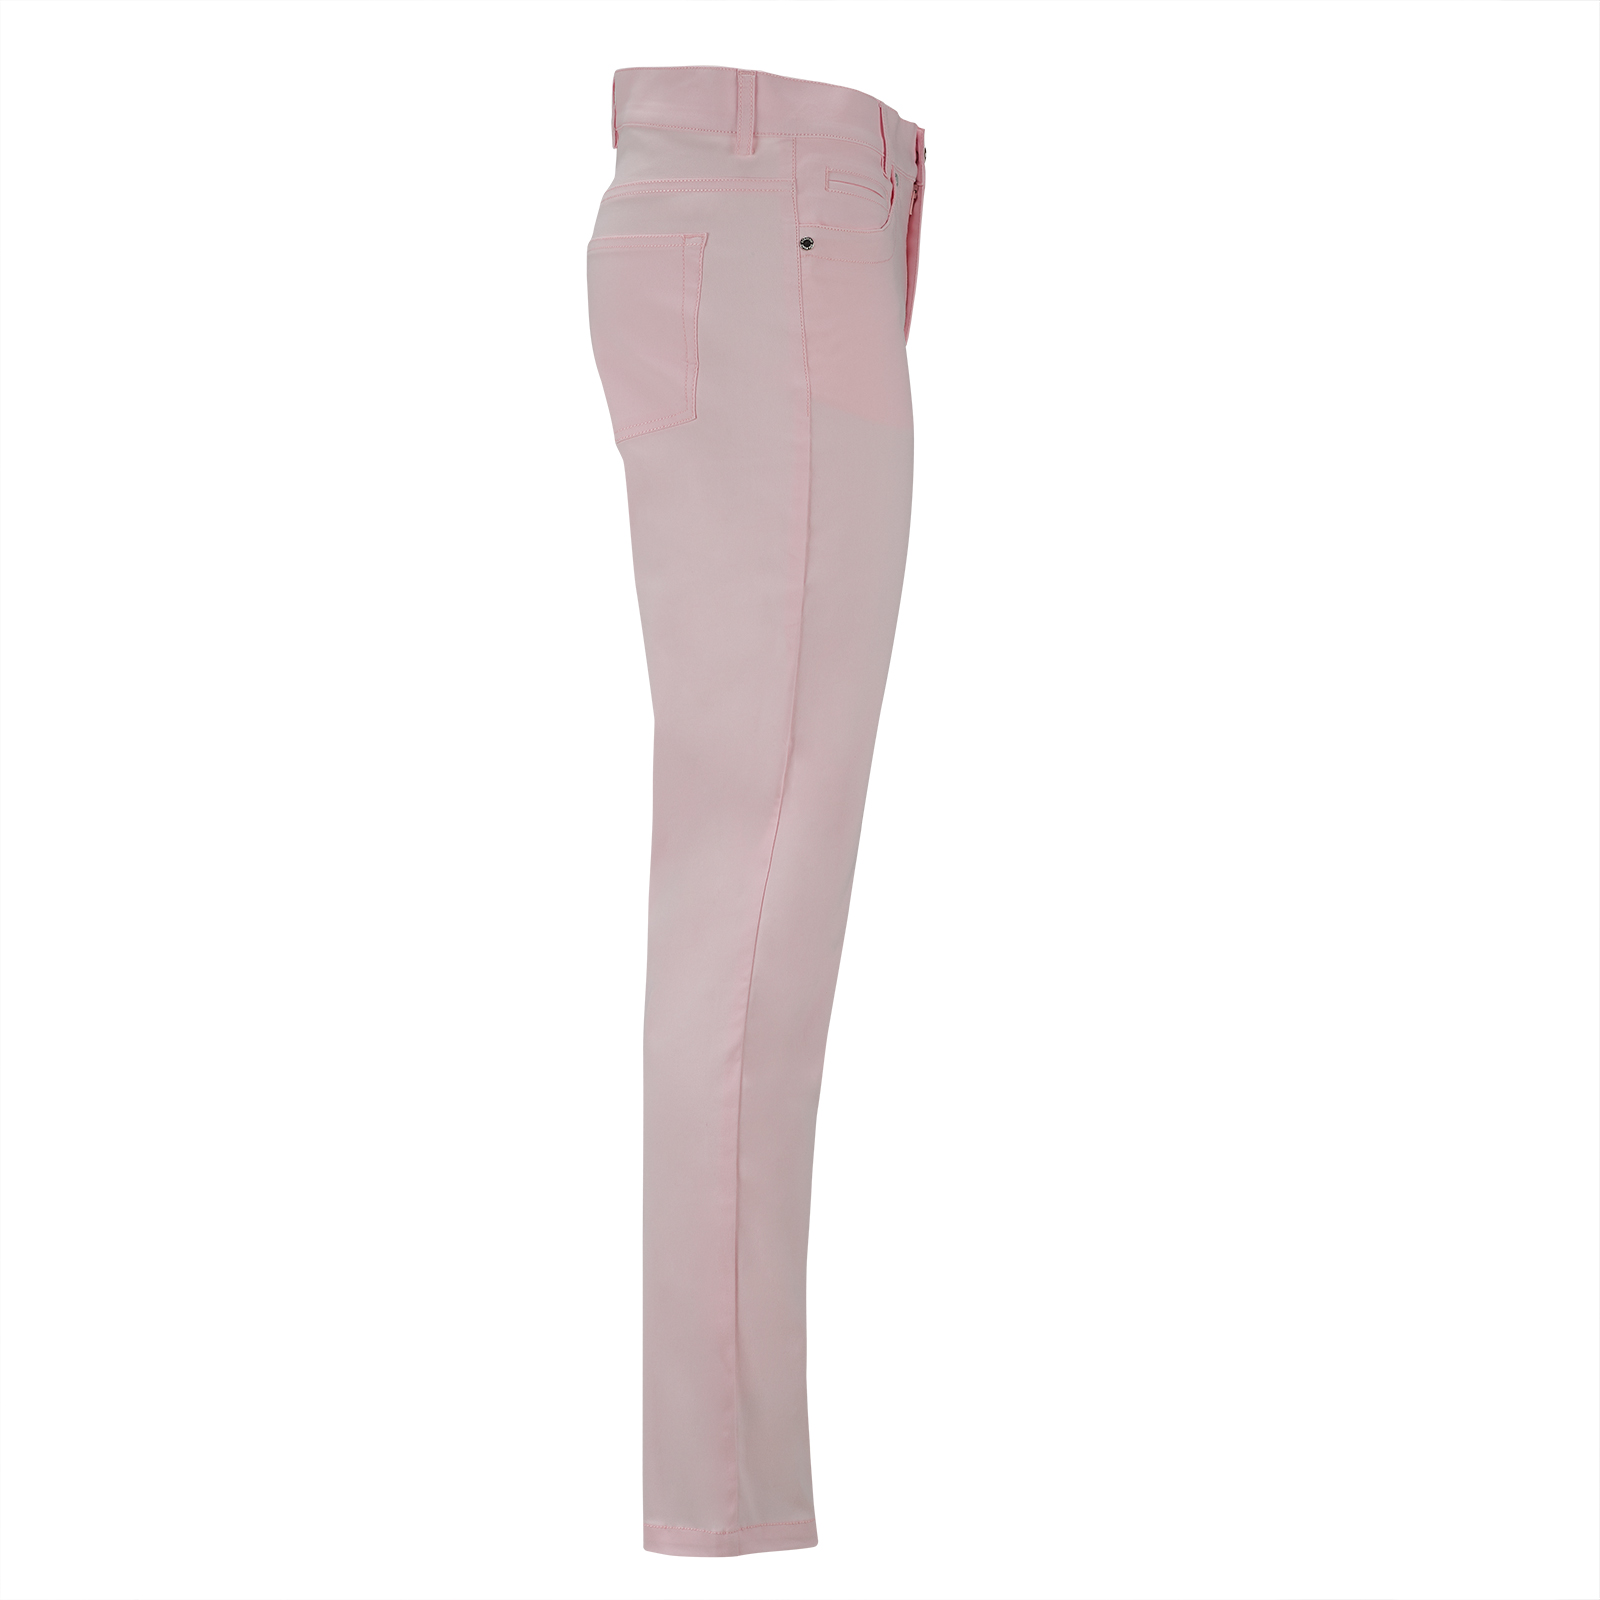 Cotton-Blend 7/8 Damen Stretchhose mit UV-Schutz